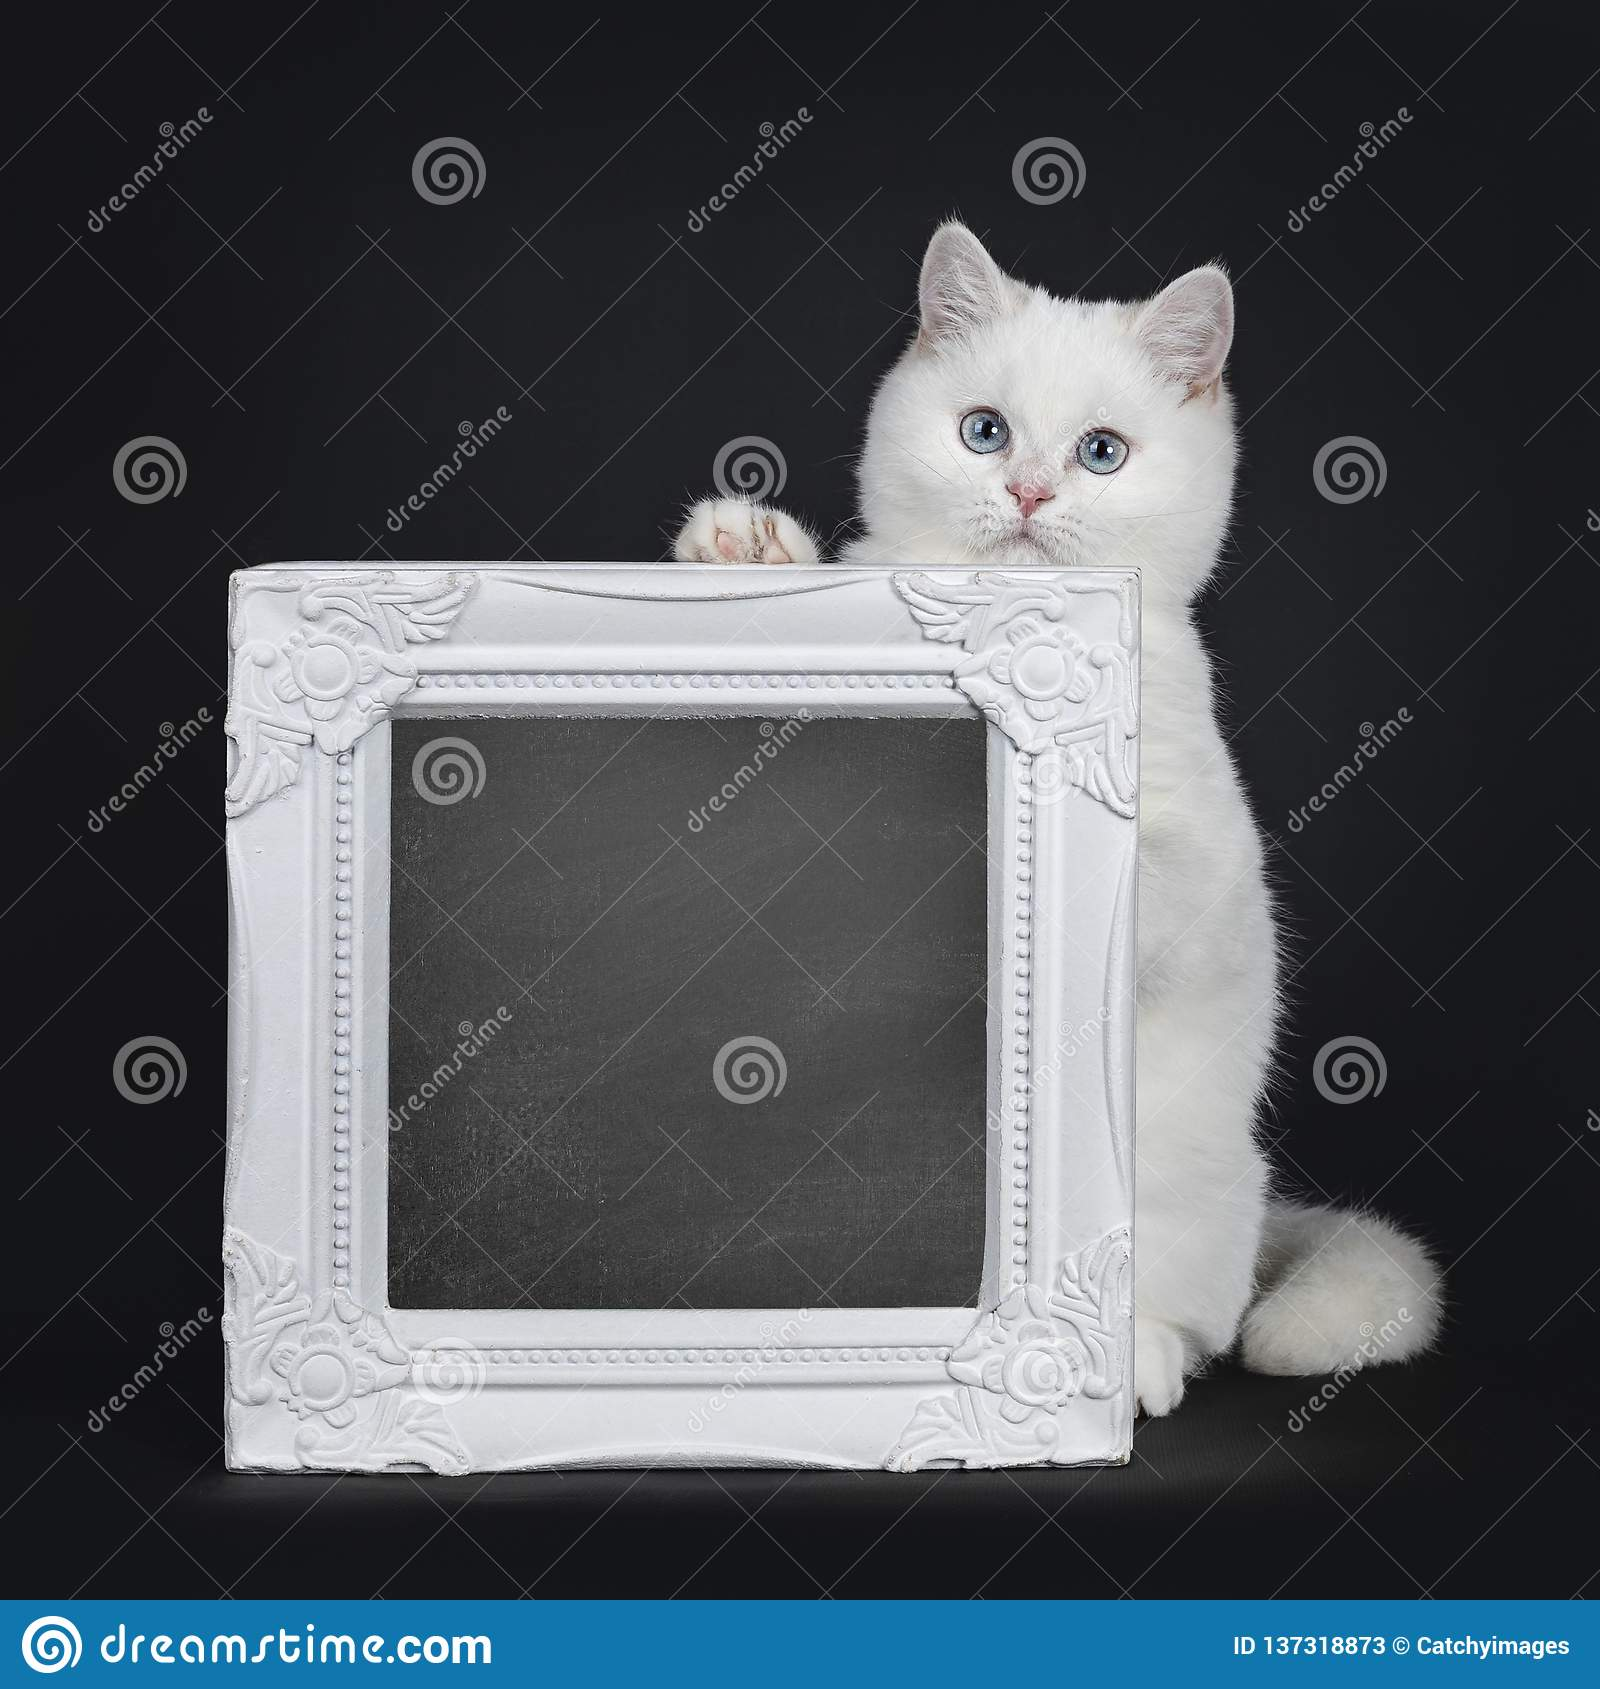 Cute Red Silver Shaded Cameo Point British Shorthair Isolated On Black Background Stock Image Image Of Black Lens 137318873